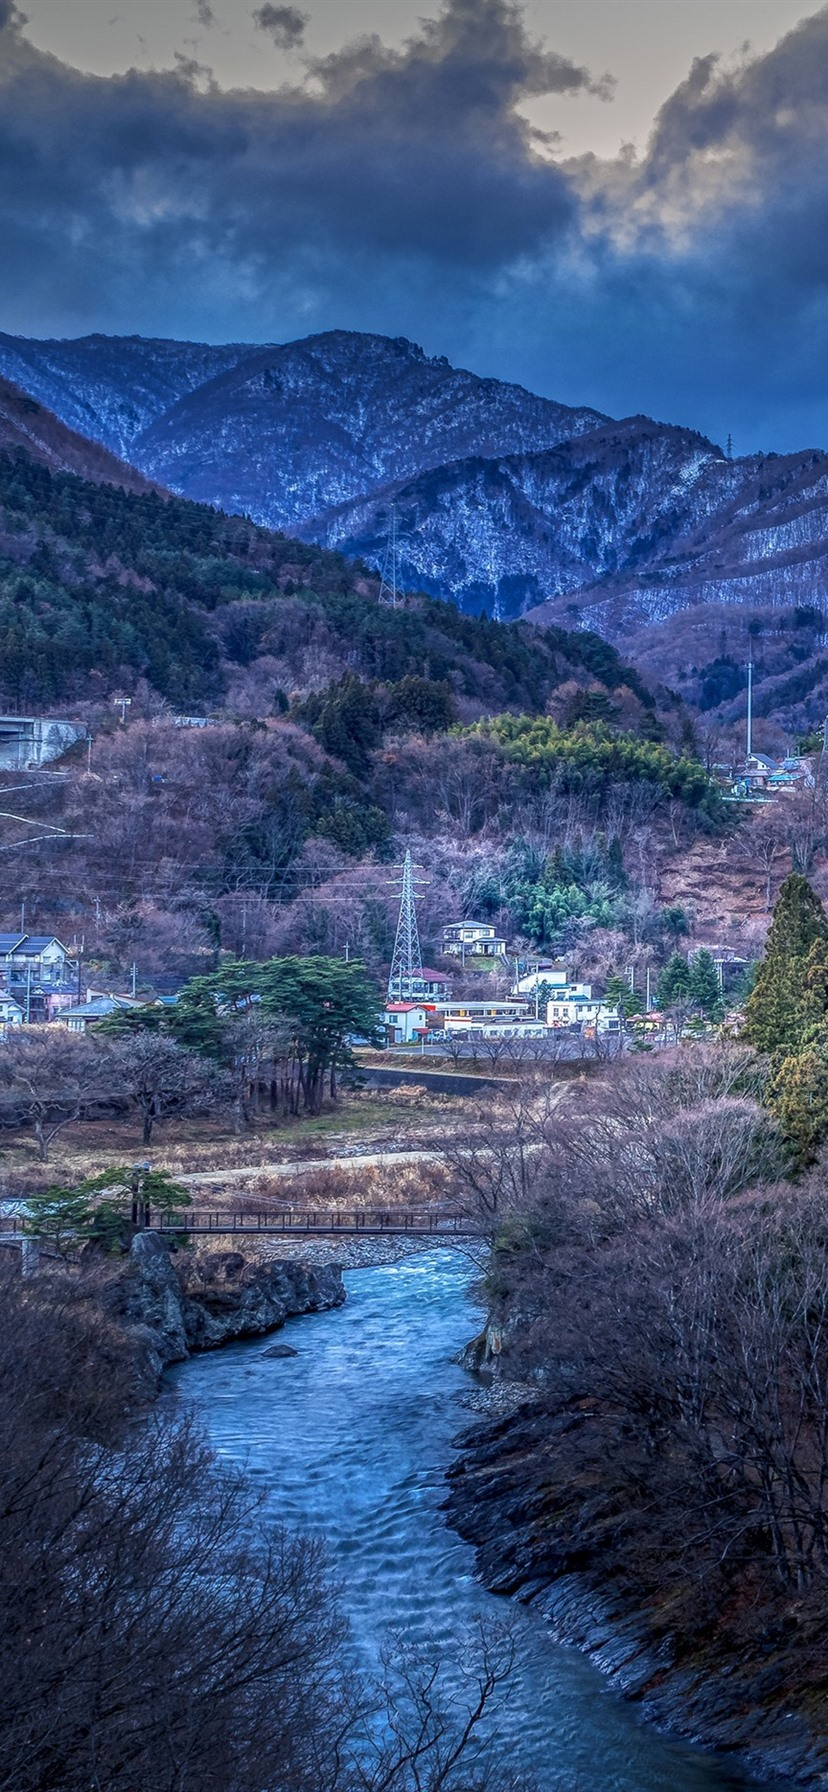 Japan Mountains Trees Village River 828x1792 Iphone 11 Xr